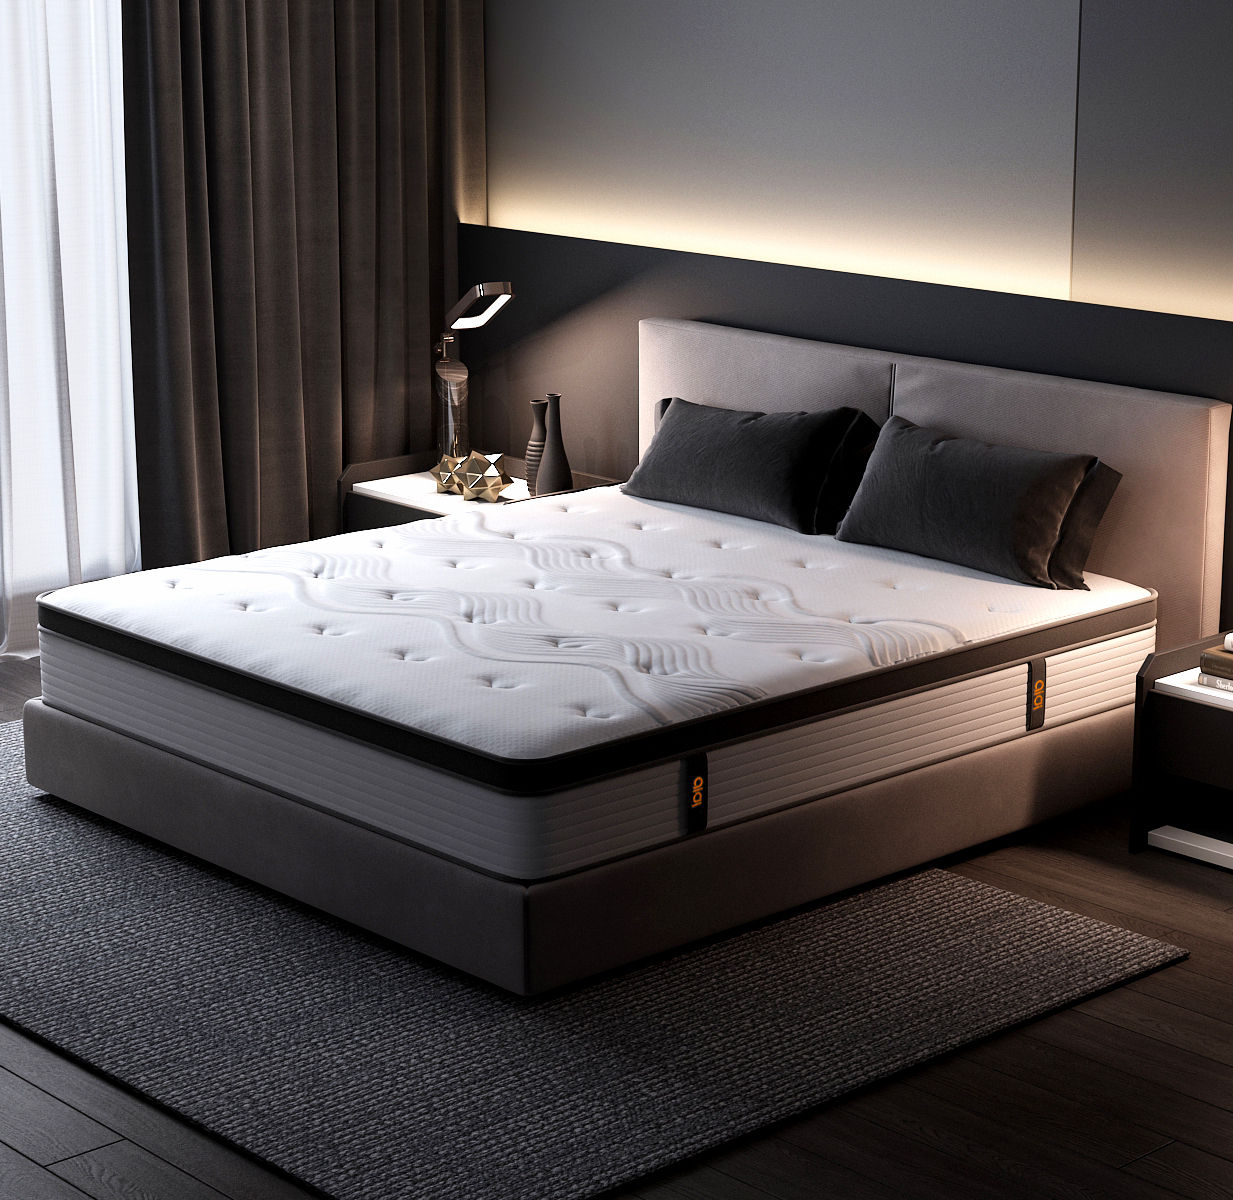 King Size Memory Foam 5 Zone Pocket Coil Spring Mattress For Online Selling Store And Hotel Furniture